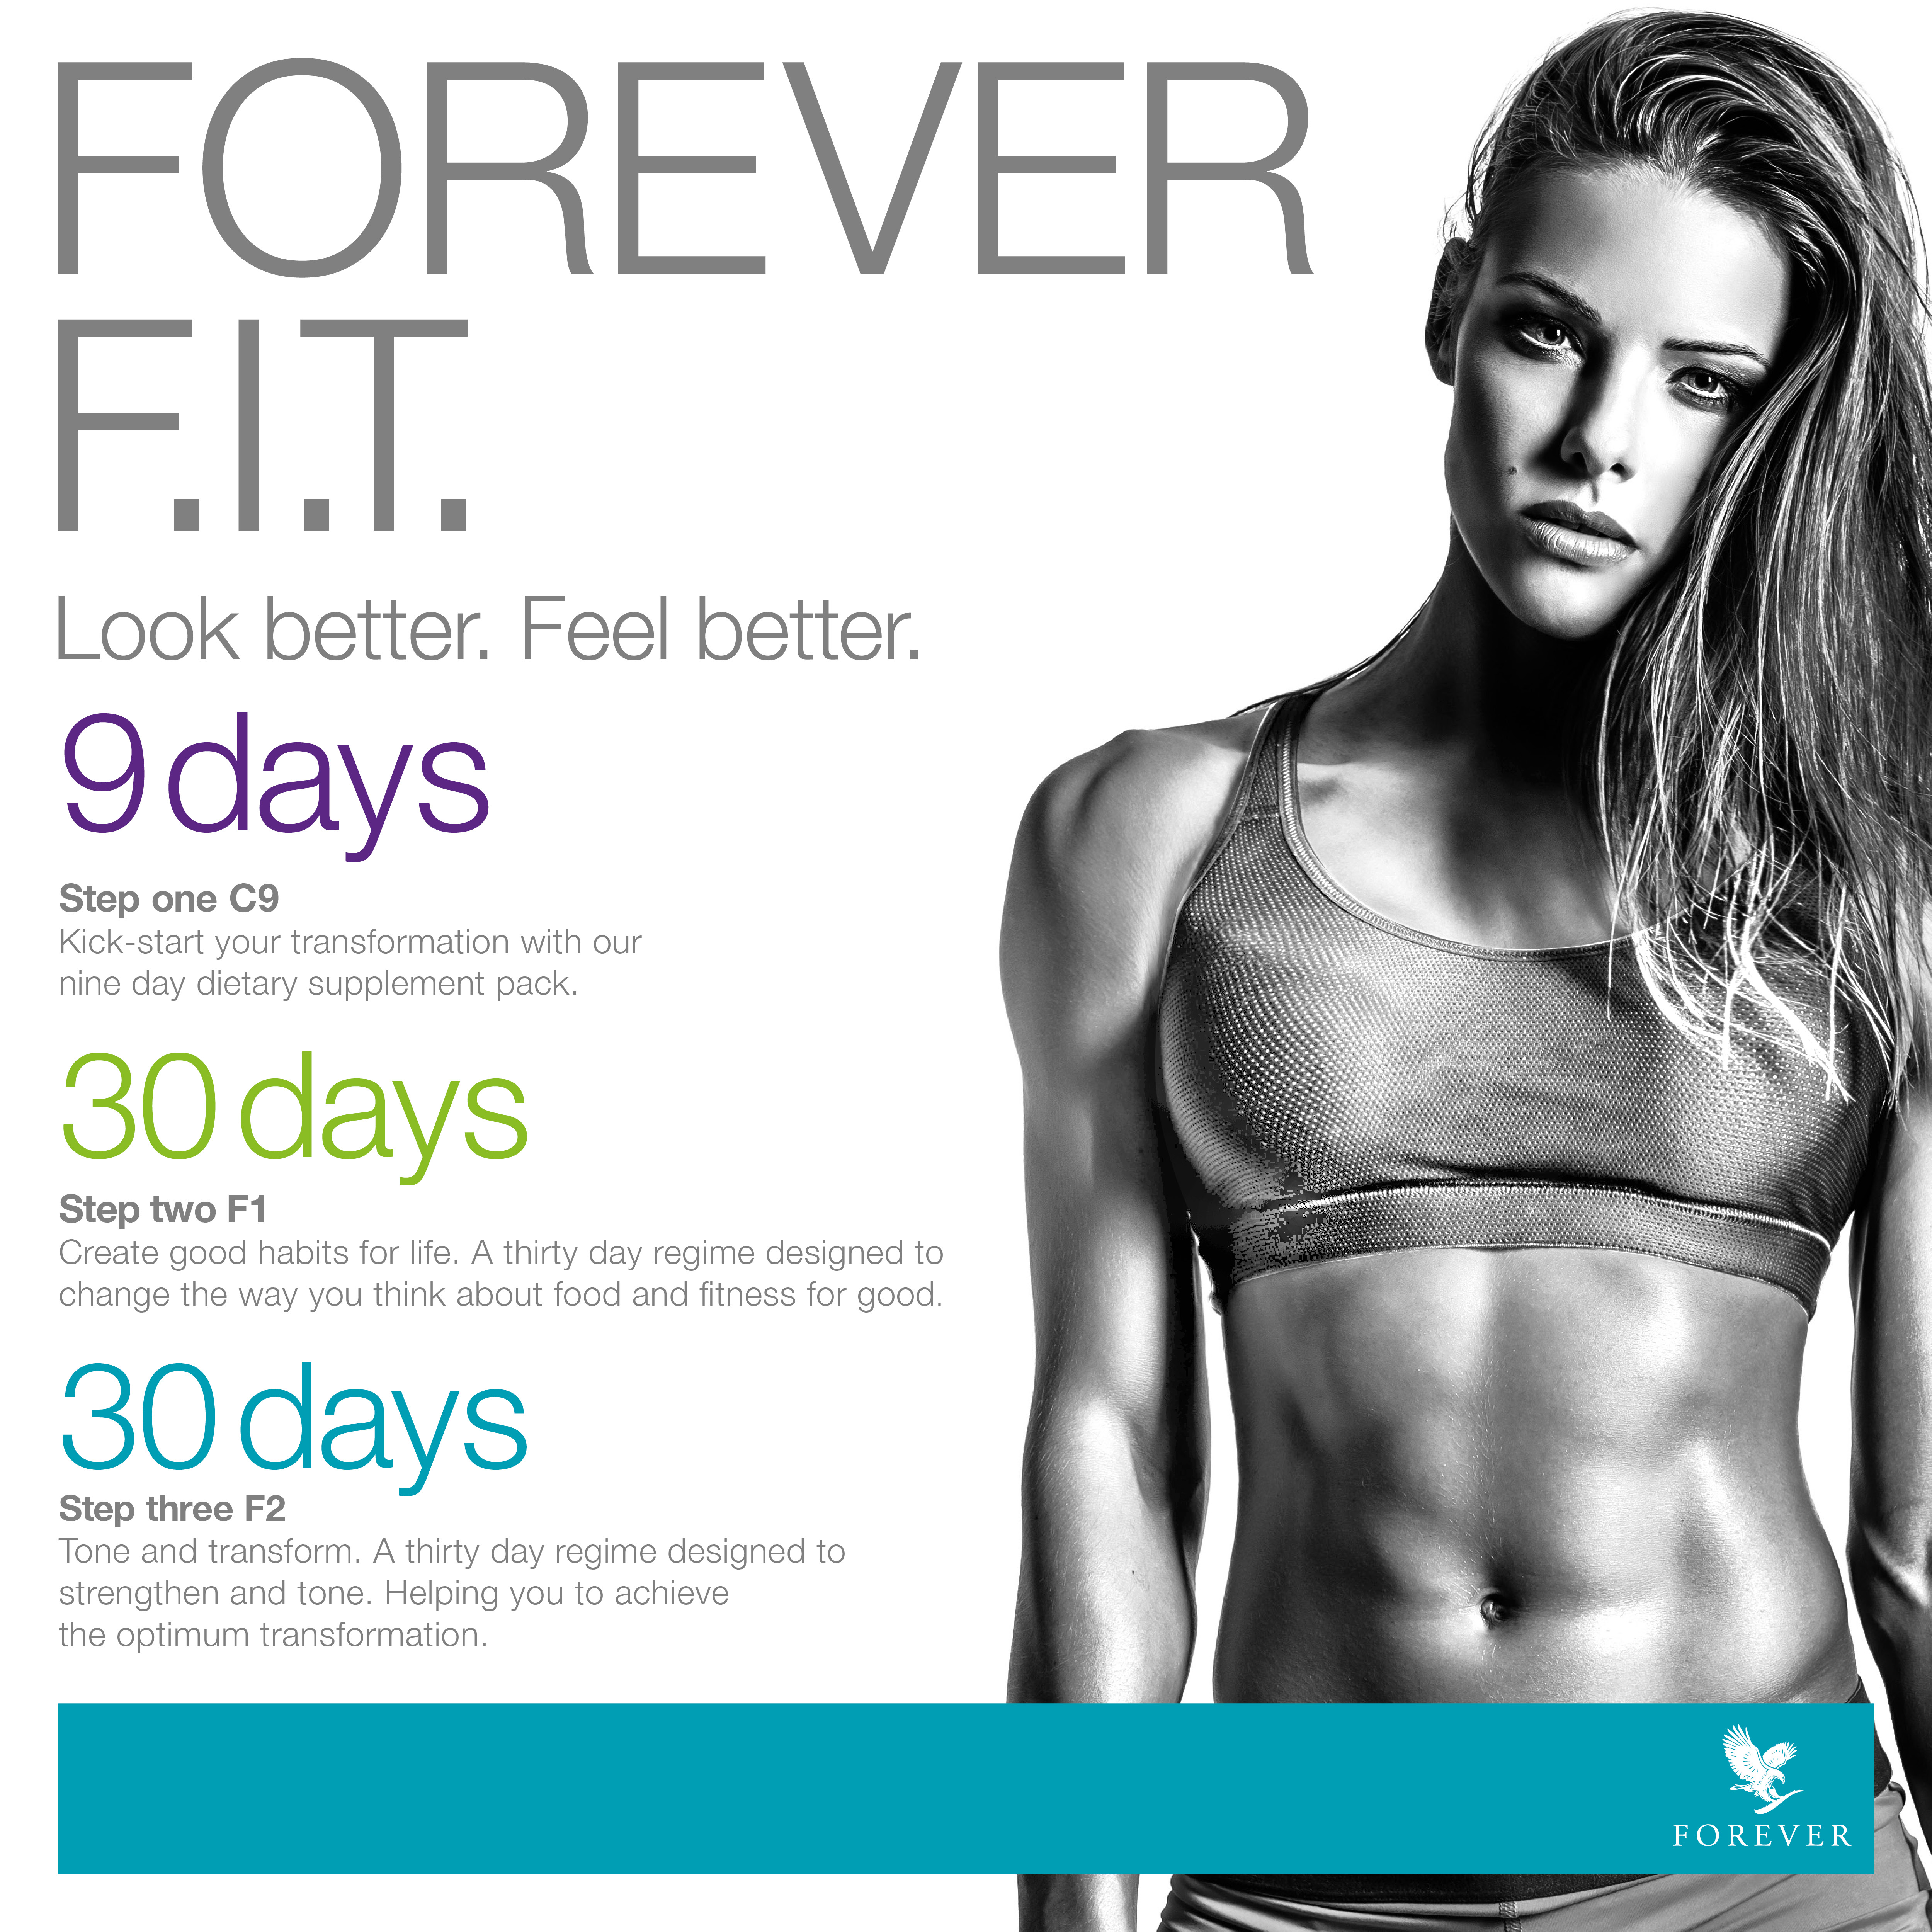 https://www.foreverknowledge.info/fileadmin/Products/Product_Adverts_November_2015/Fitness_Adverts_Social/Product_adverts_F.I.T._1_AW_V1_SOCIAL_MEDIA.jpg